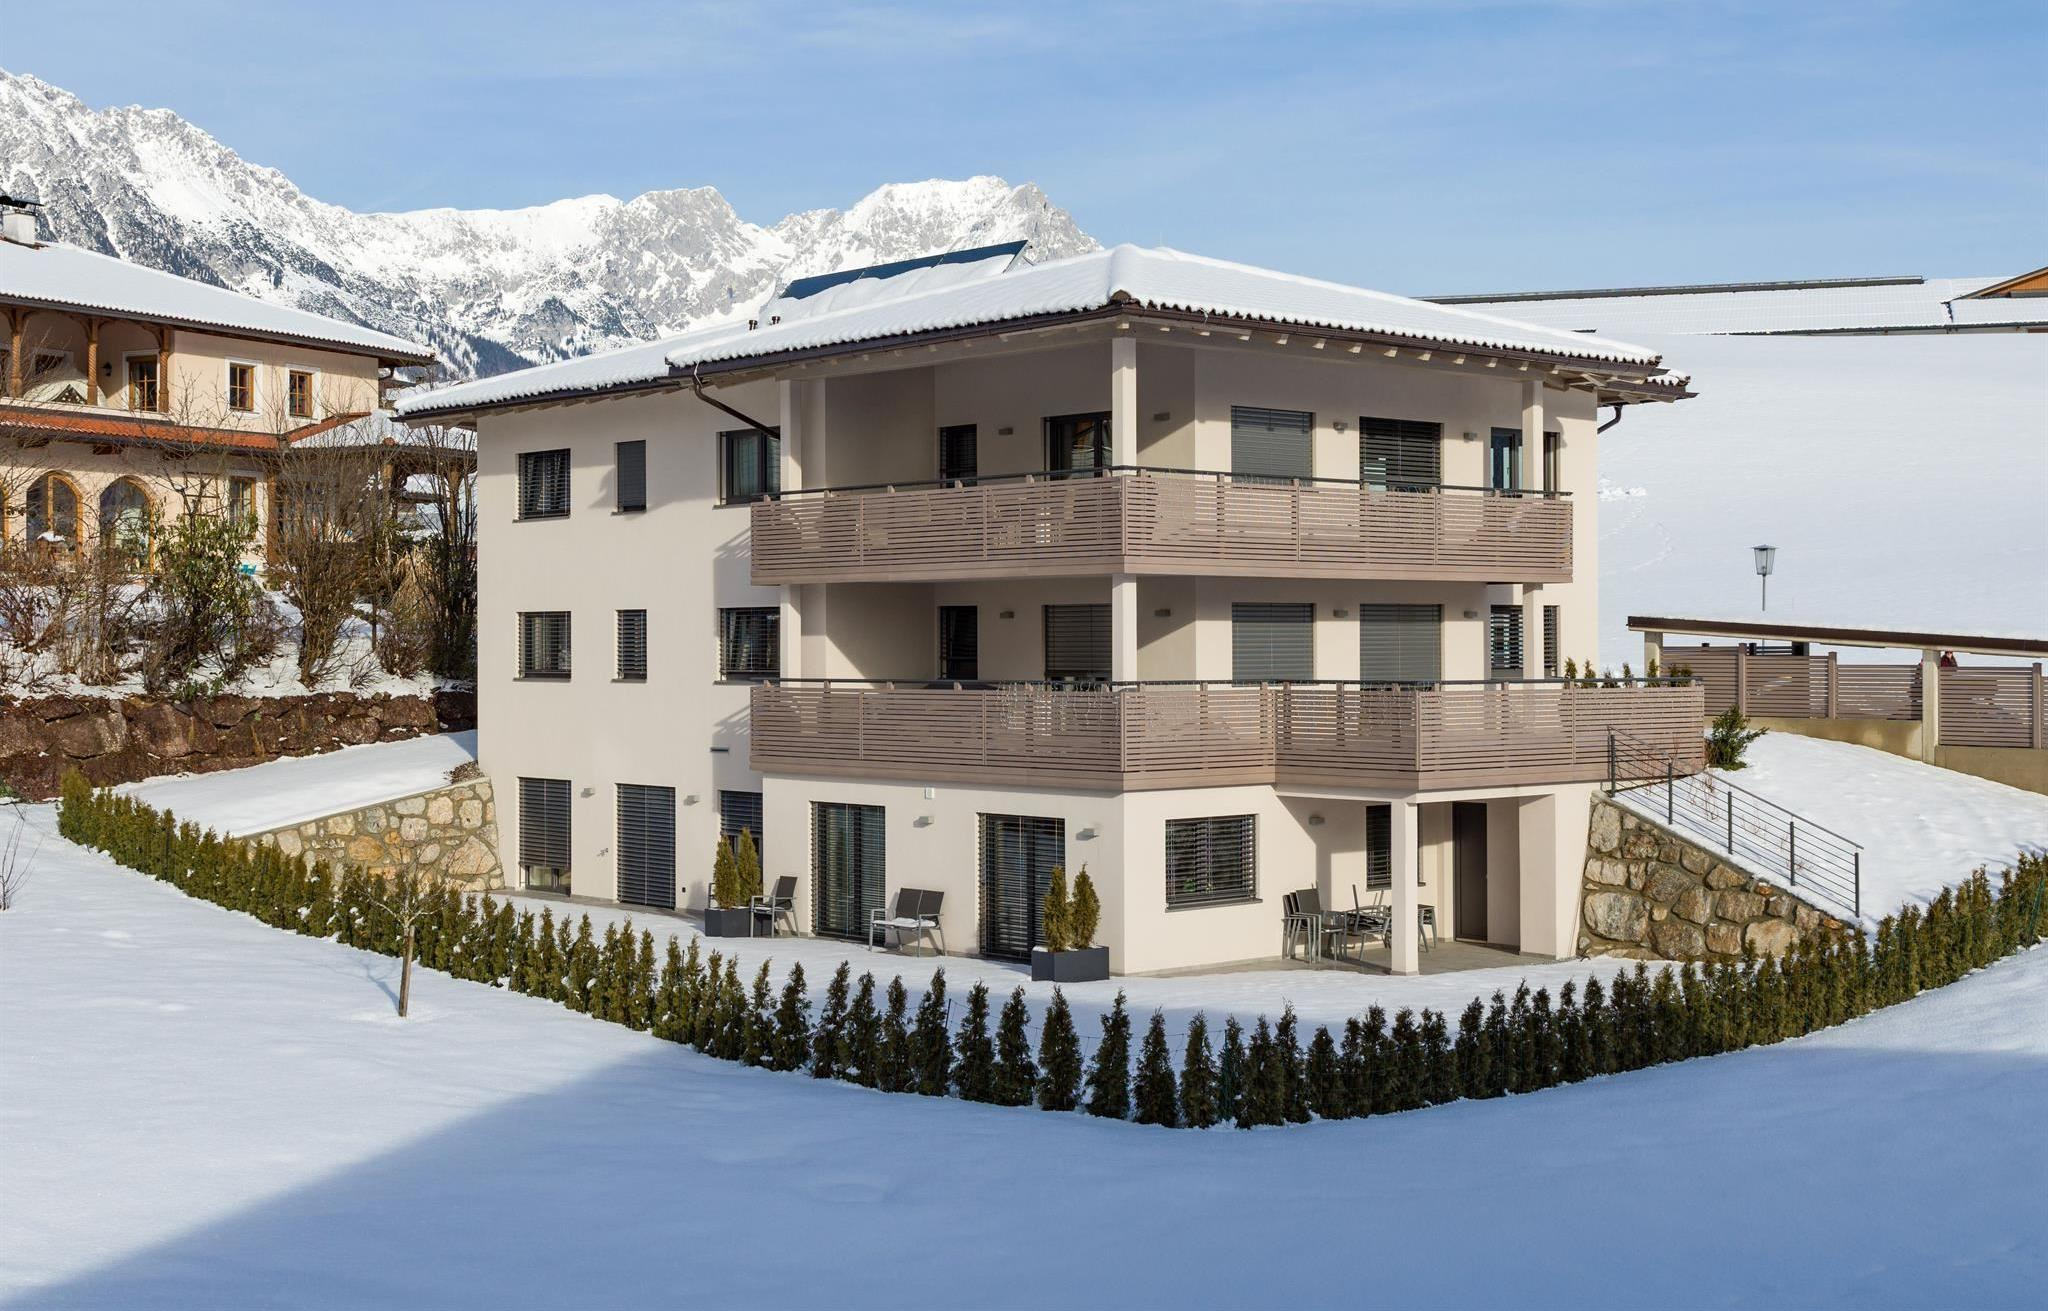 Appartementen Deluxe am Wilder Kaiser Tirol